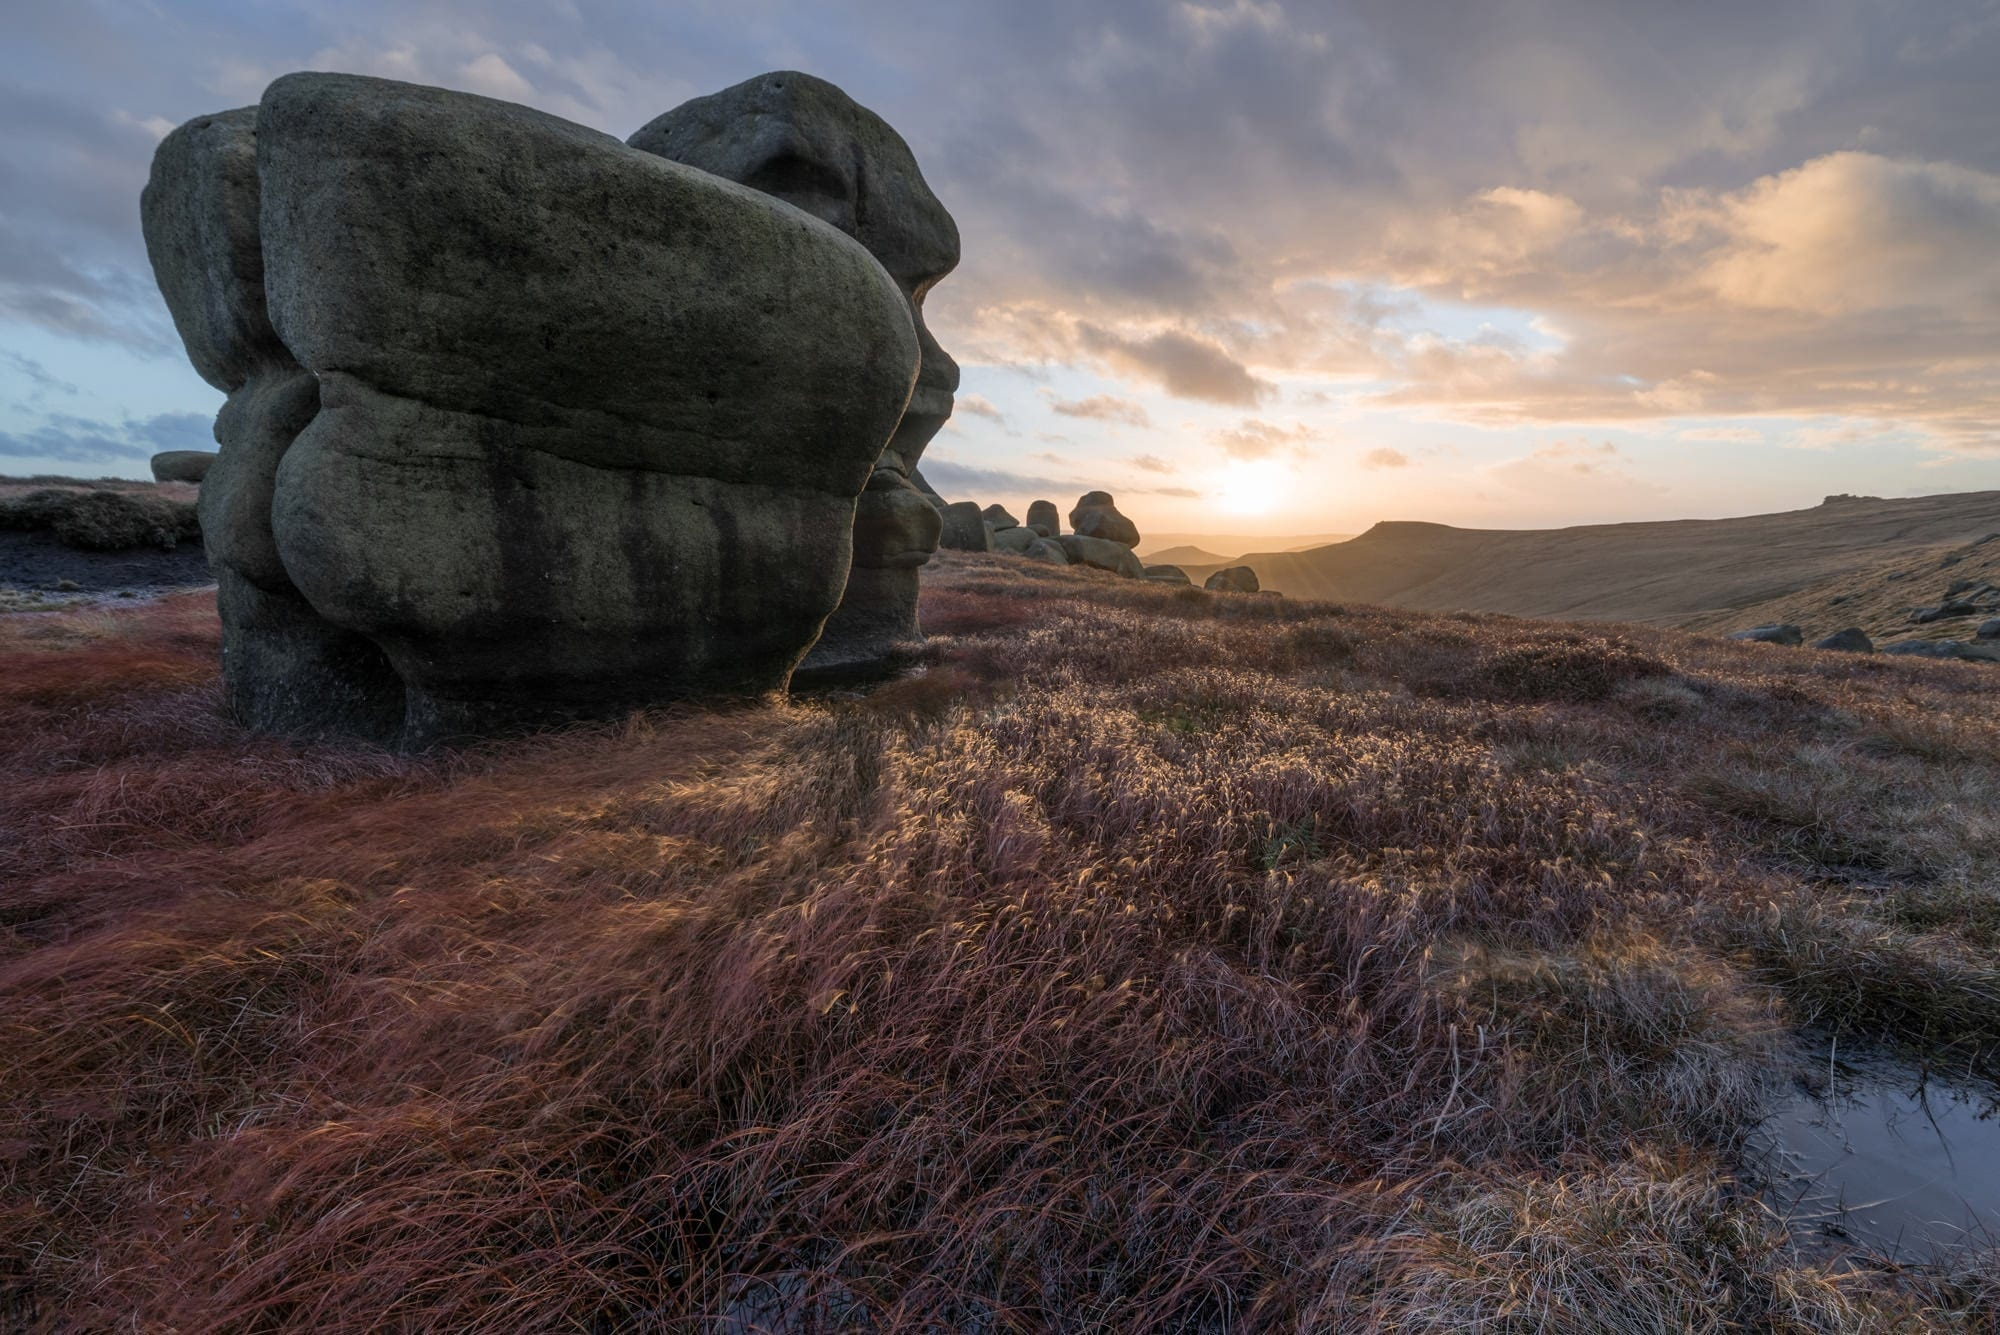 Wool Packs Sunset - Kinder Scout - Peak District Photography